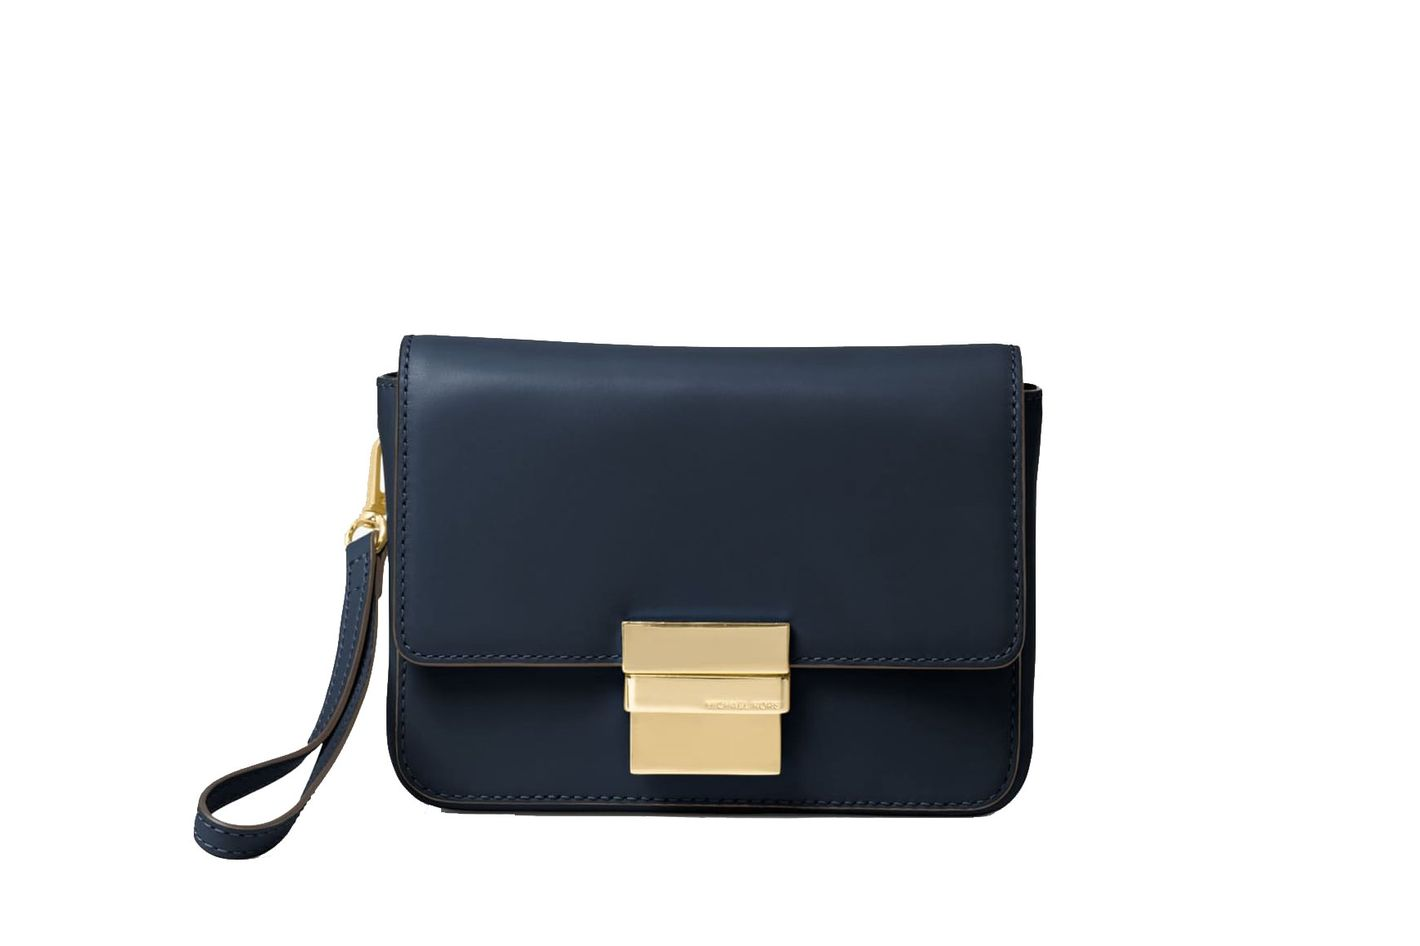 Michael Kors Madelyn Small Leather Clutch